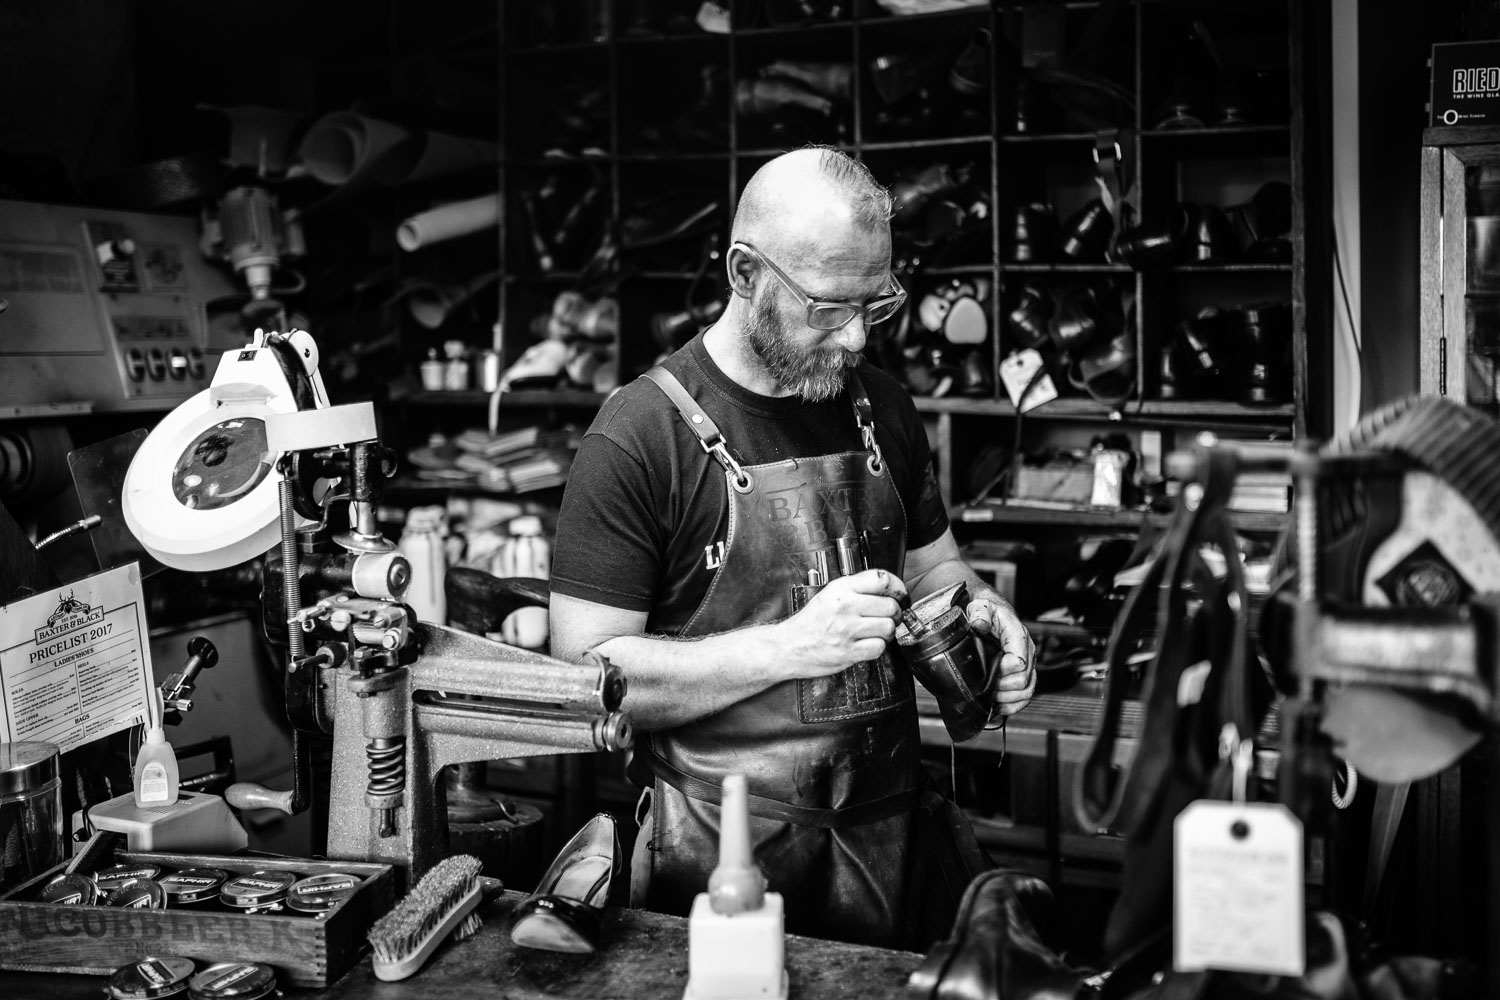 Sydney branding photography of a leather goods craftsman.